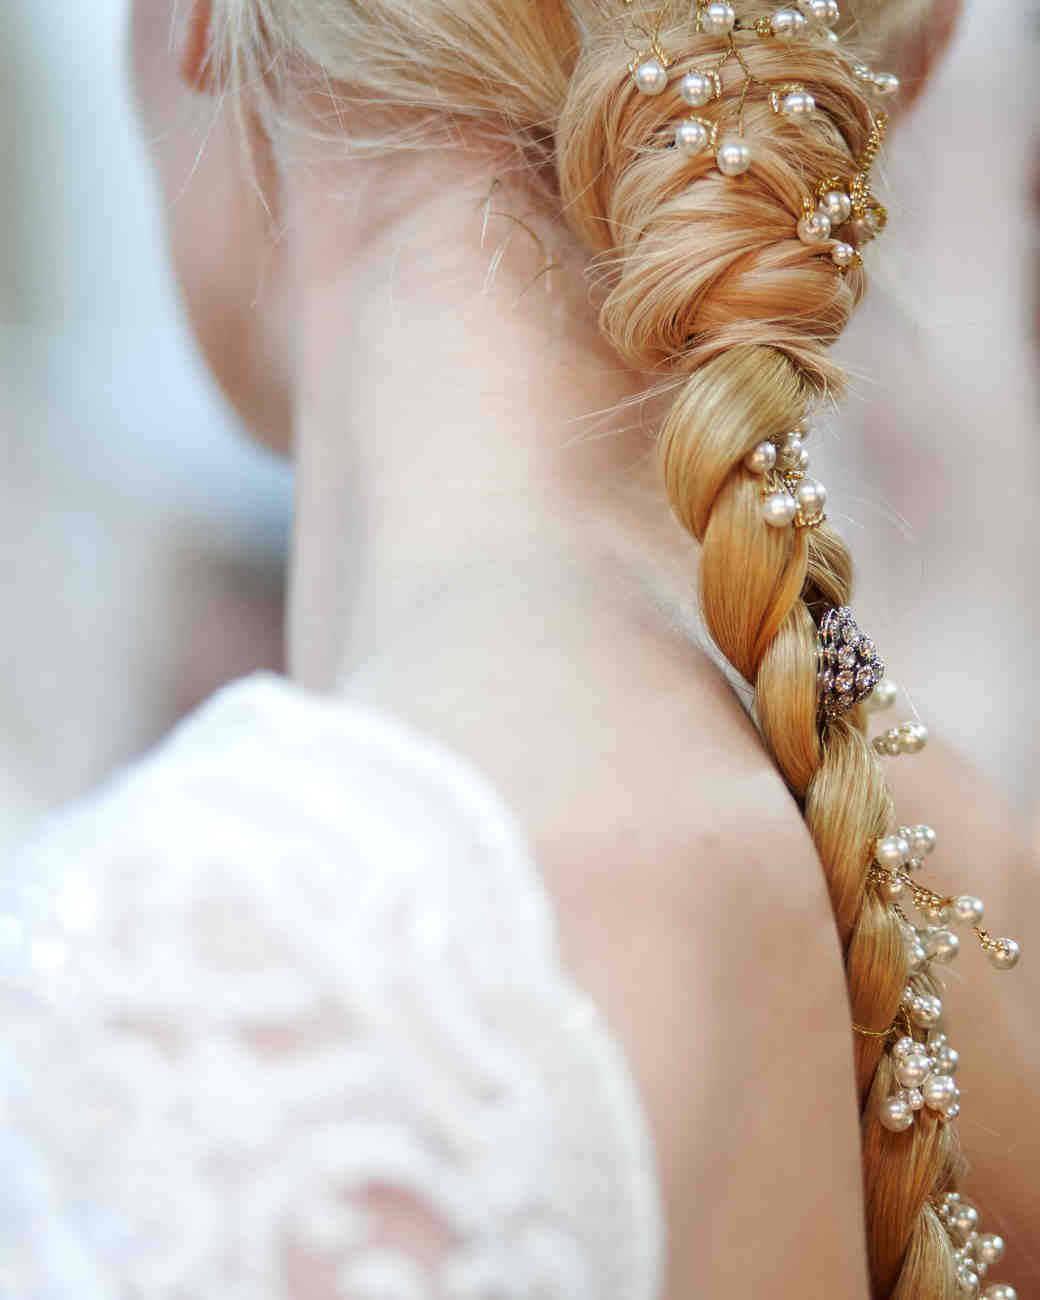 Wedding Hairstyles For Bows, Buds, Tiaras, And More From